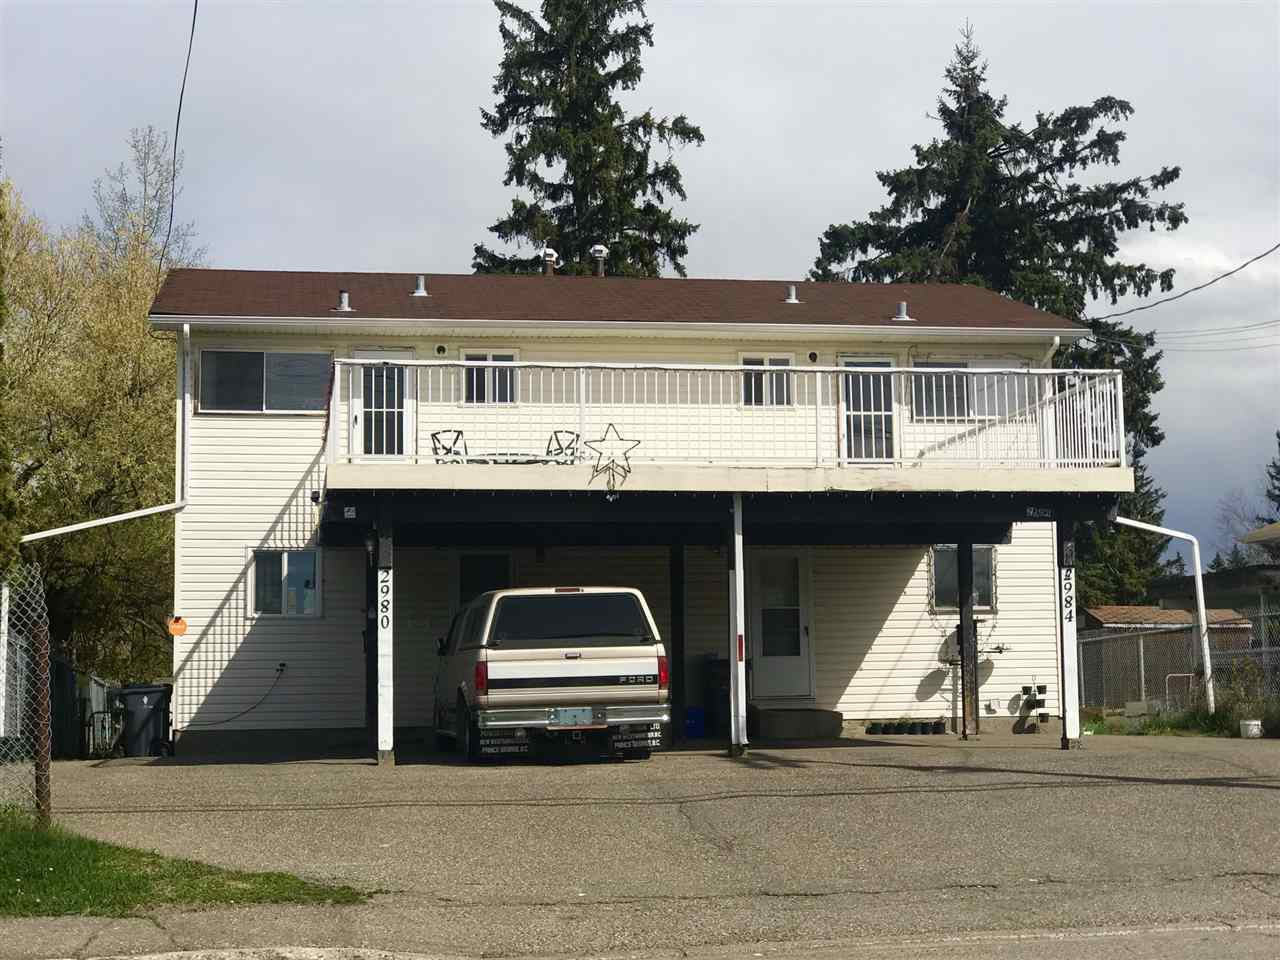 Main Photo: 2980 - 2984 UPLAND Street in Prince George: Perry House Duplex for sale (PG City West (Zone 71))  : MLS®# R2369005